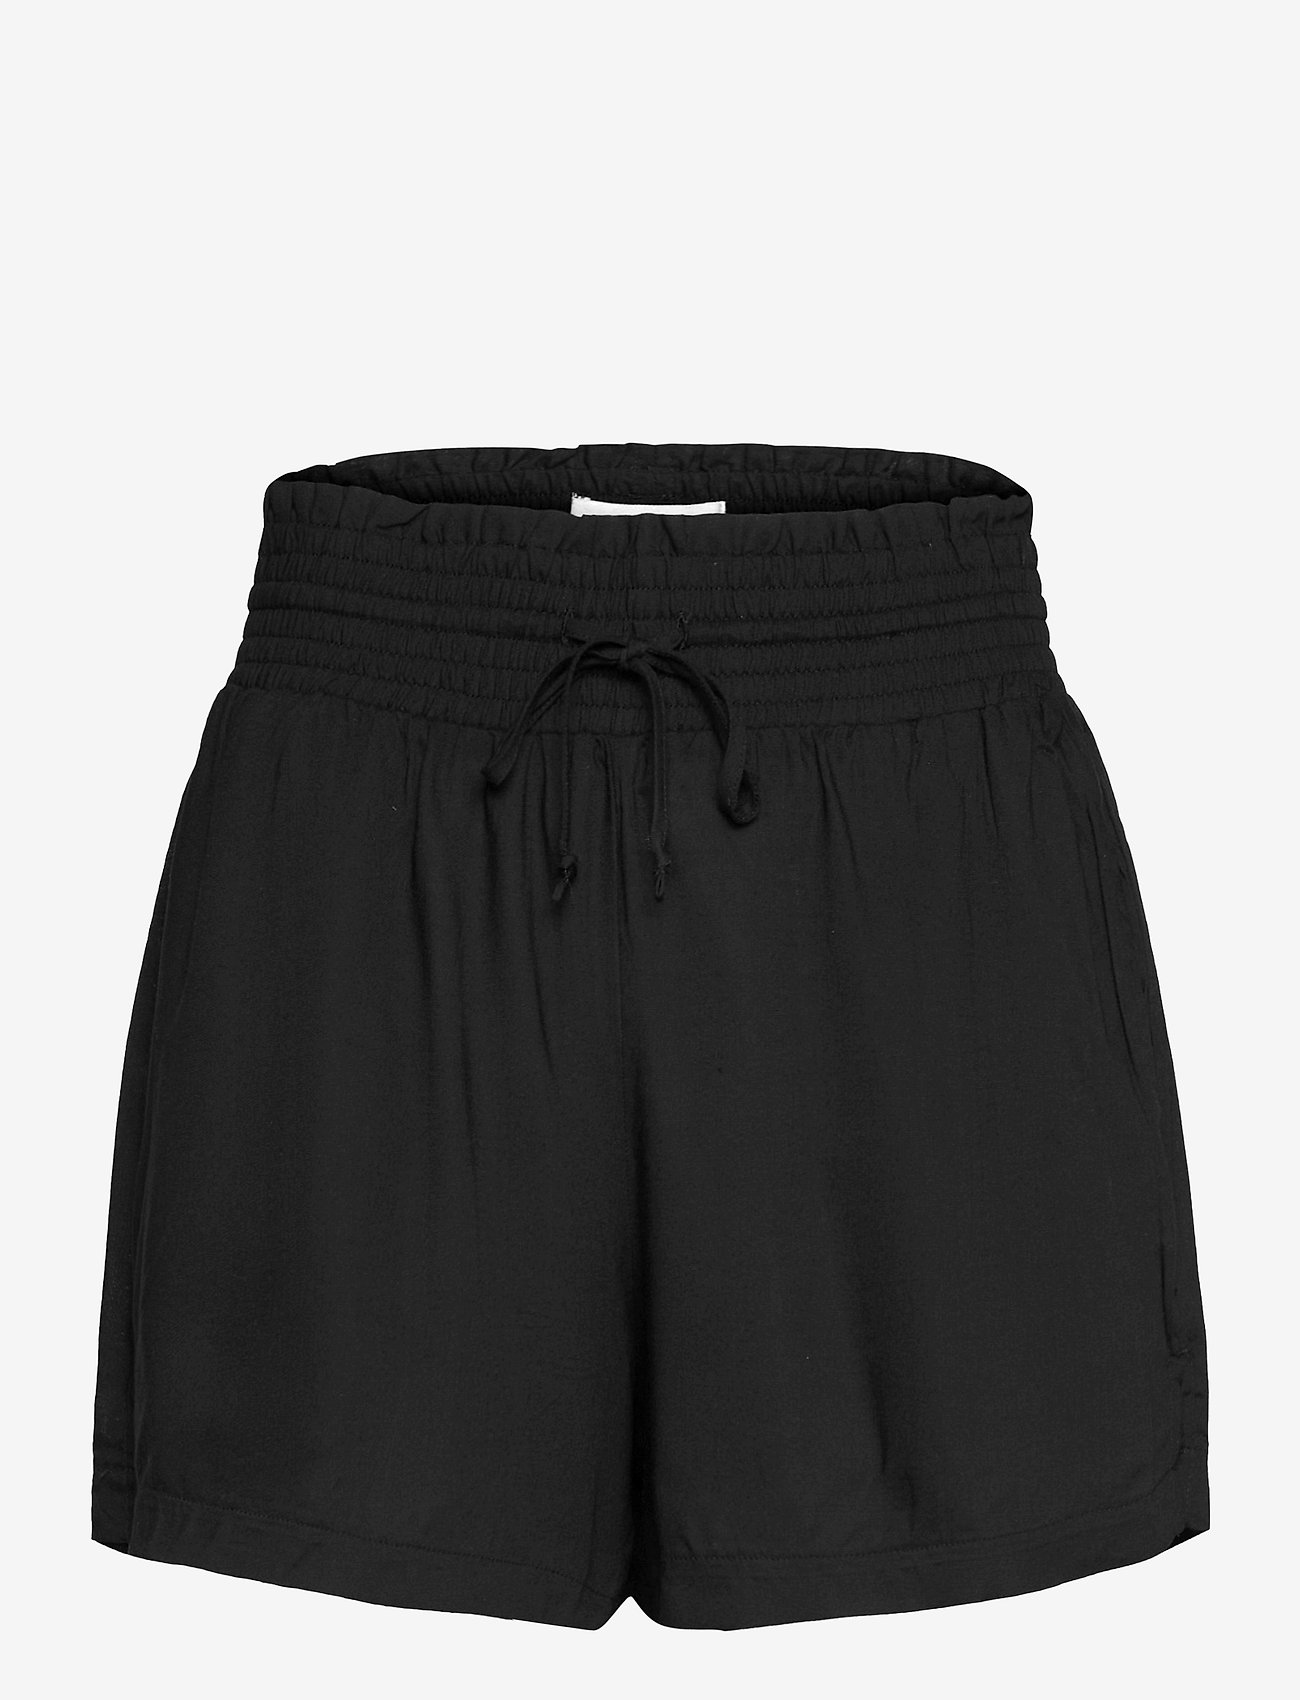 Abercrombie & Fitch - ANF WOMENS SHORTS - shorts casual - rayon pull on short black - 0